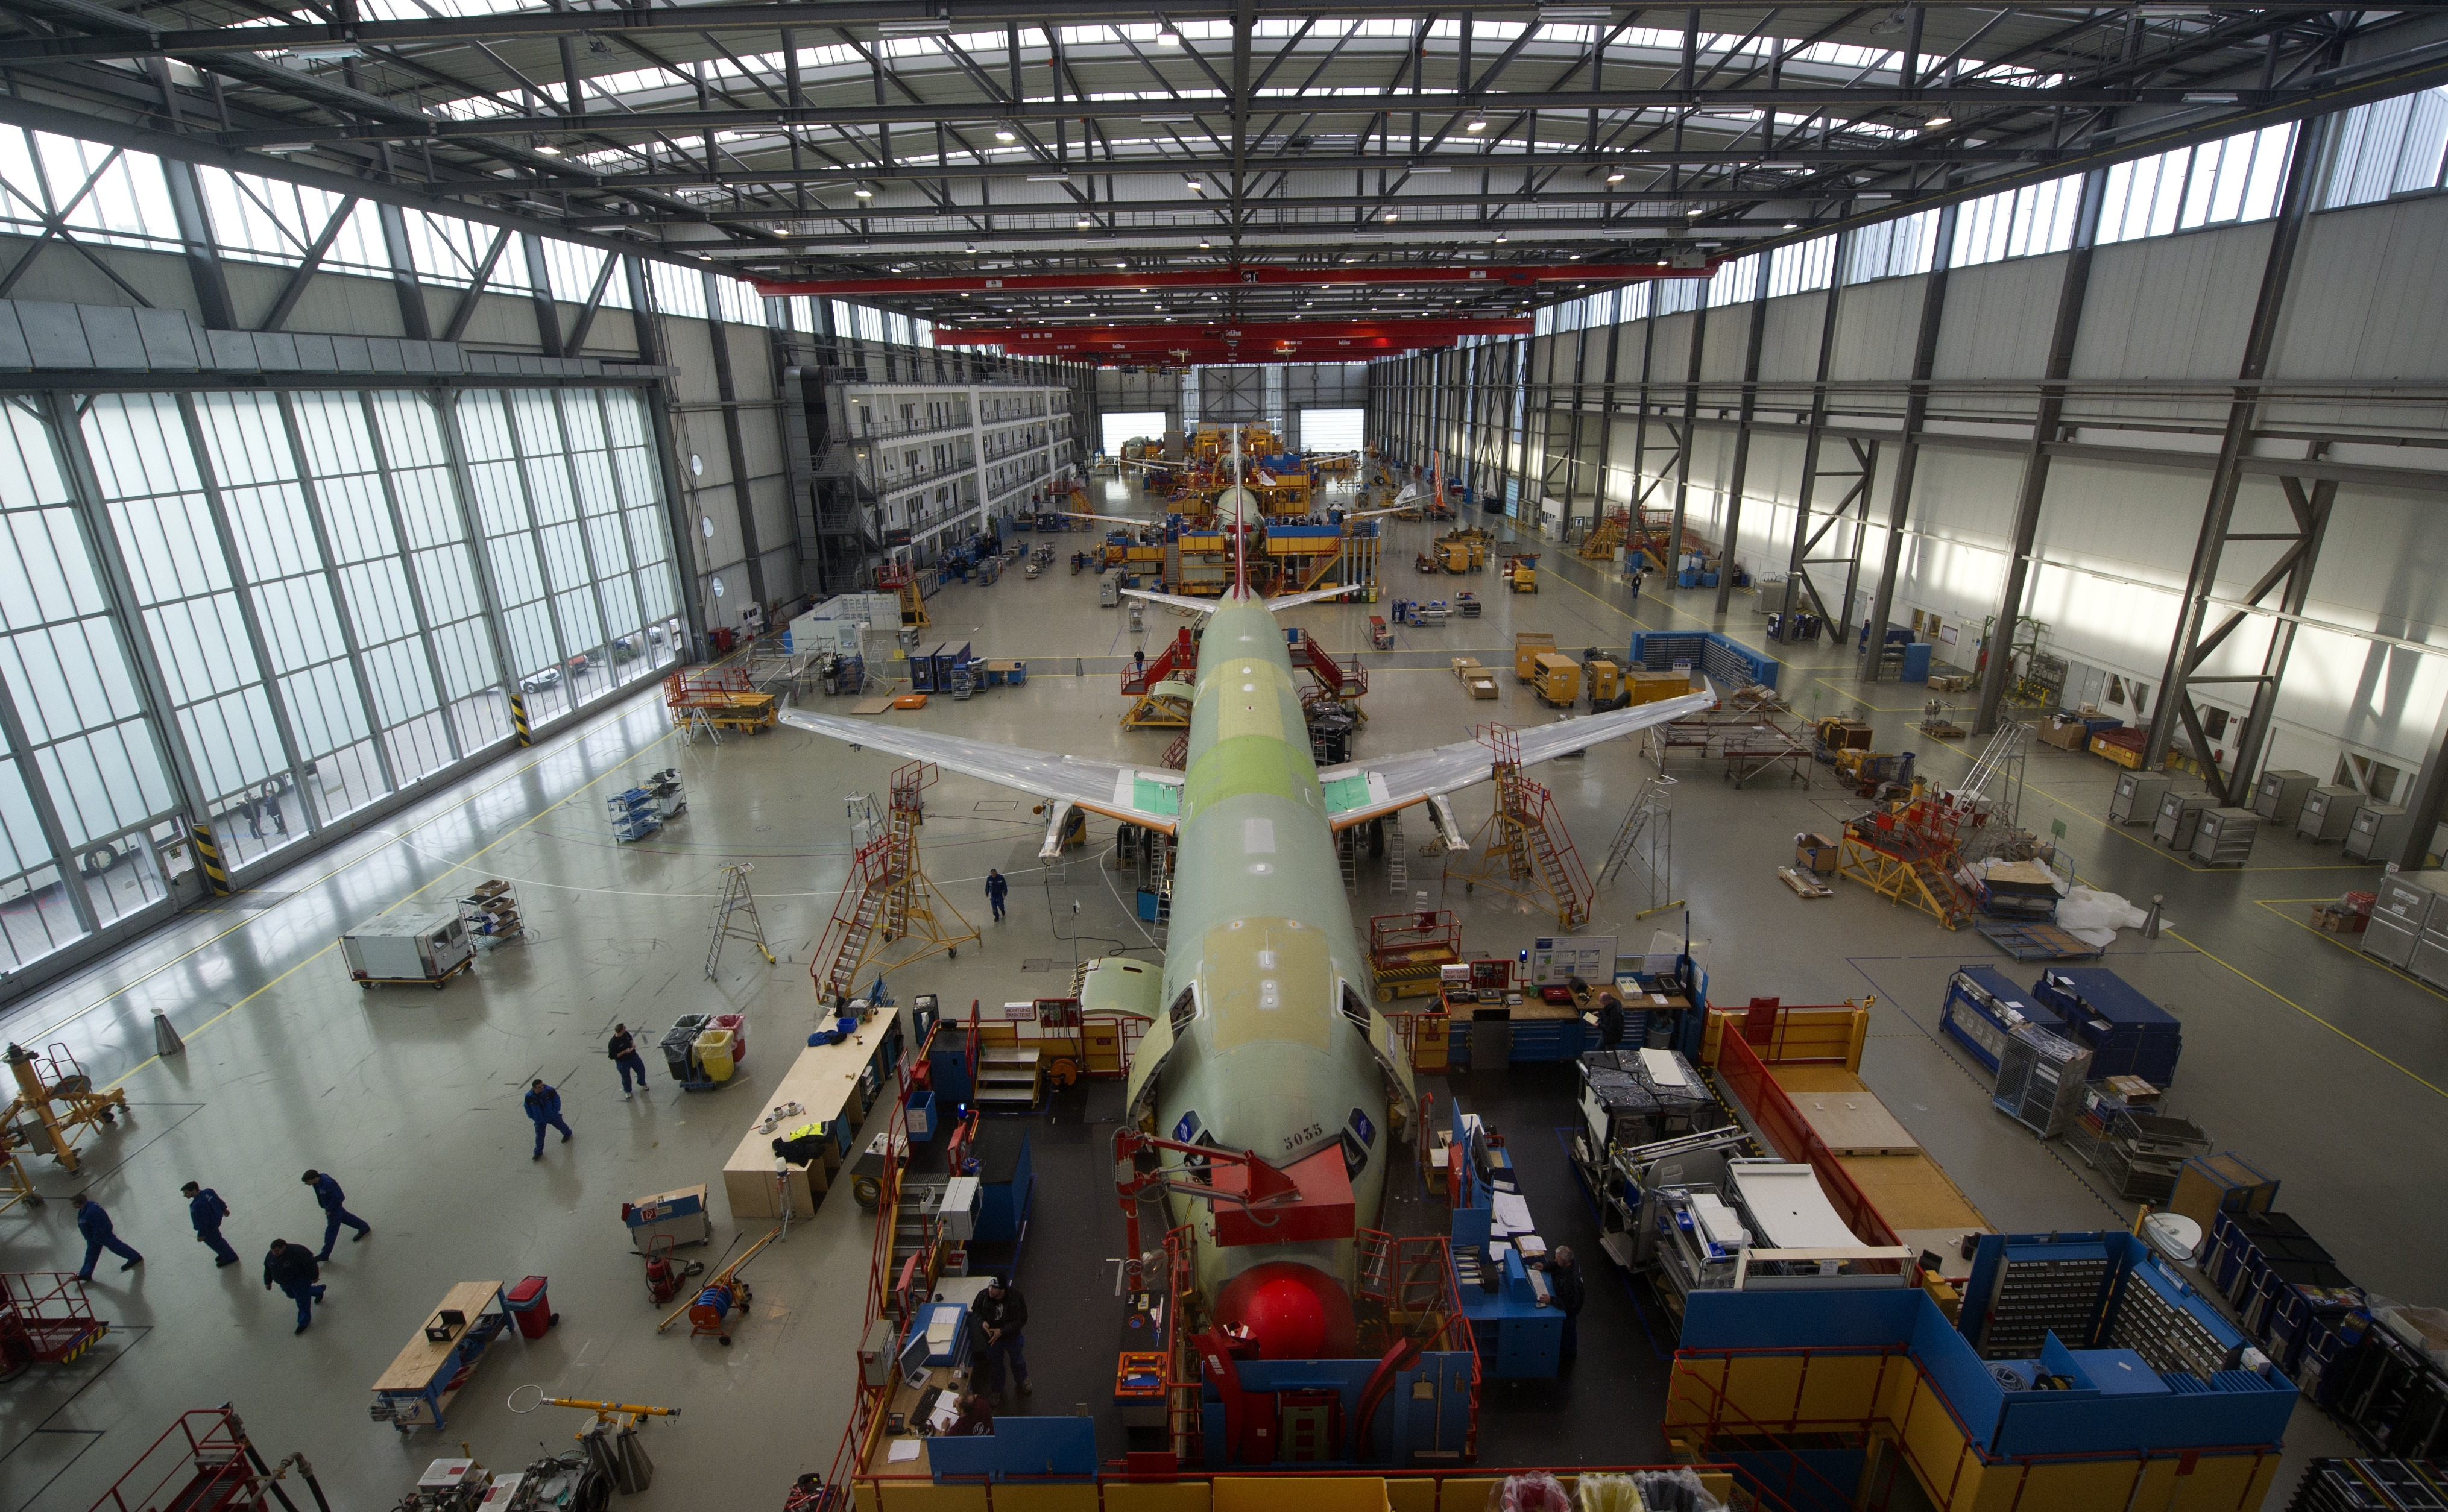 Employees of aircraft manufacturer Airbus work on an Airbus A320 plane under construction at a production hall of Airbus in Hamburg, northern Germany. A new Airbus factory has been unveiled in Alabama, setting itself up for a fierce fight with Chicago-based Boeing.